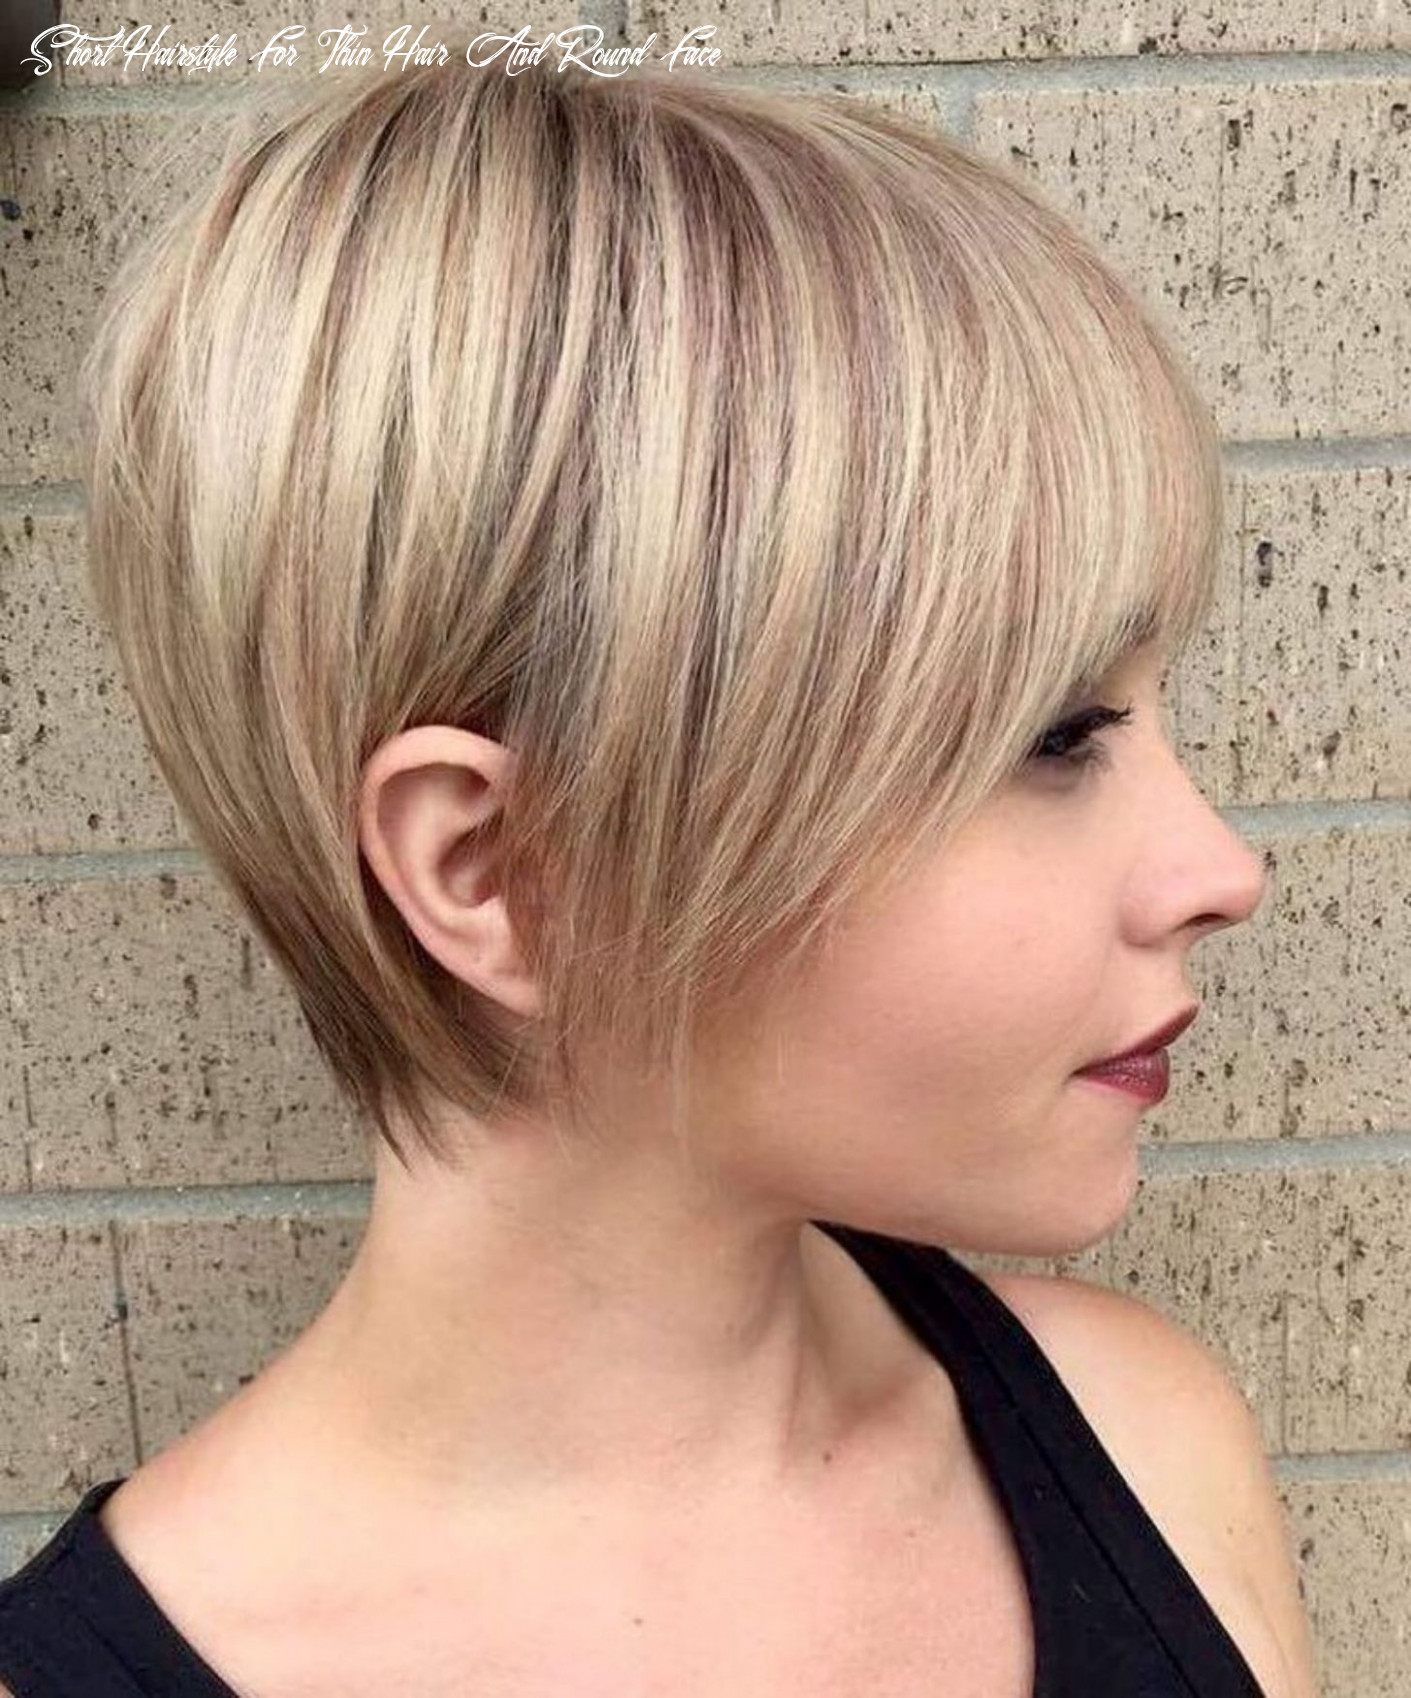 Pin on hairstyle short hairstyle for thin hair and round face